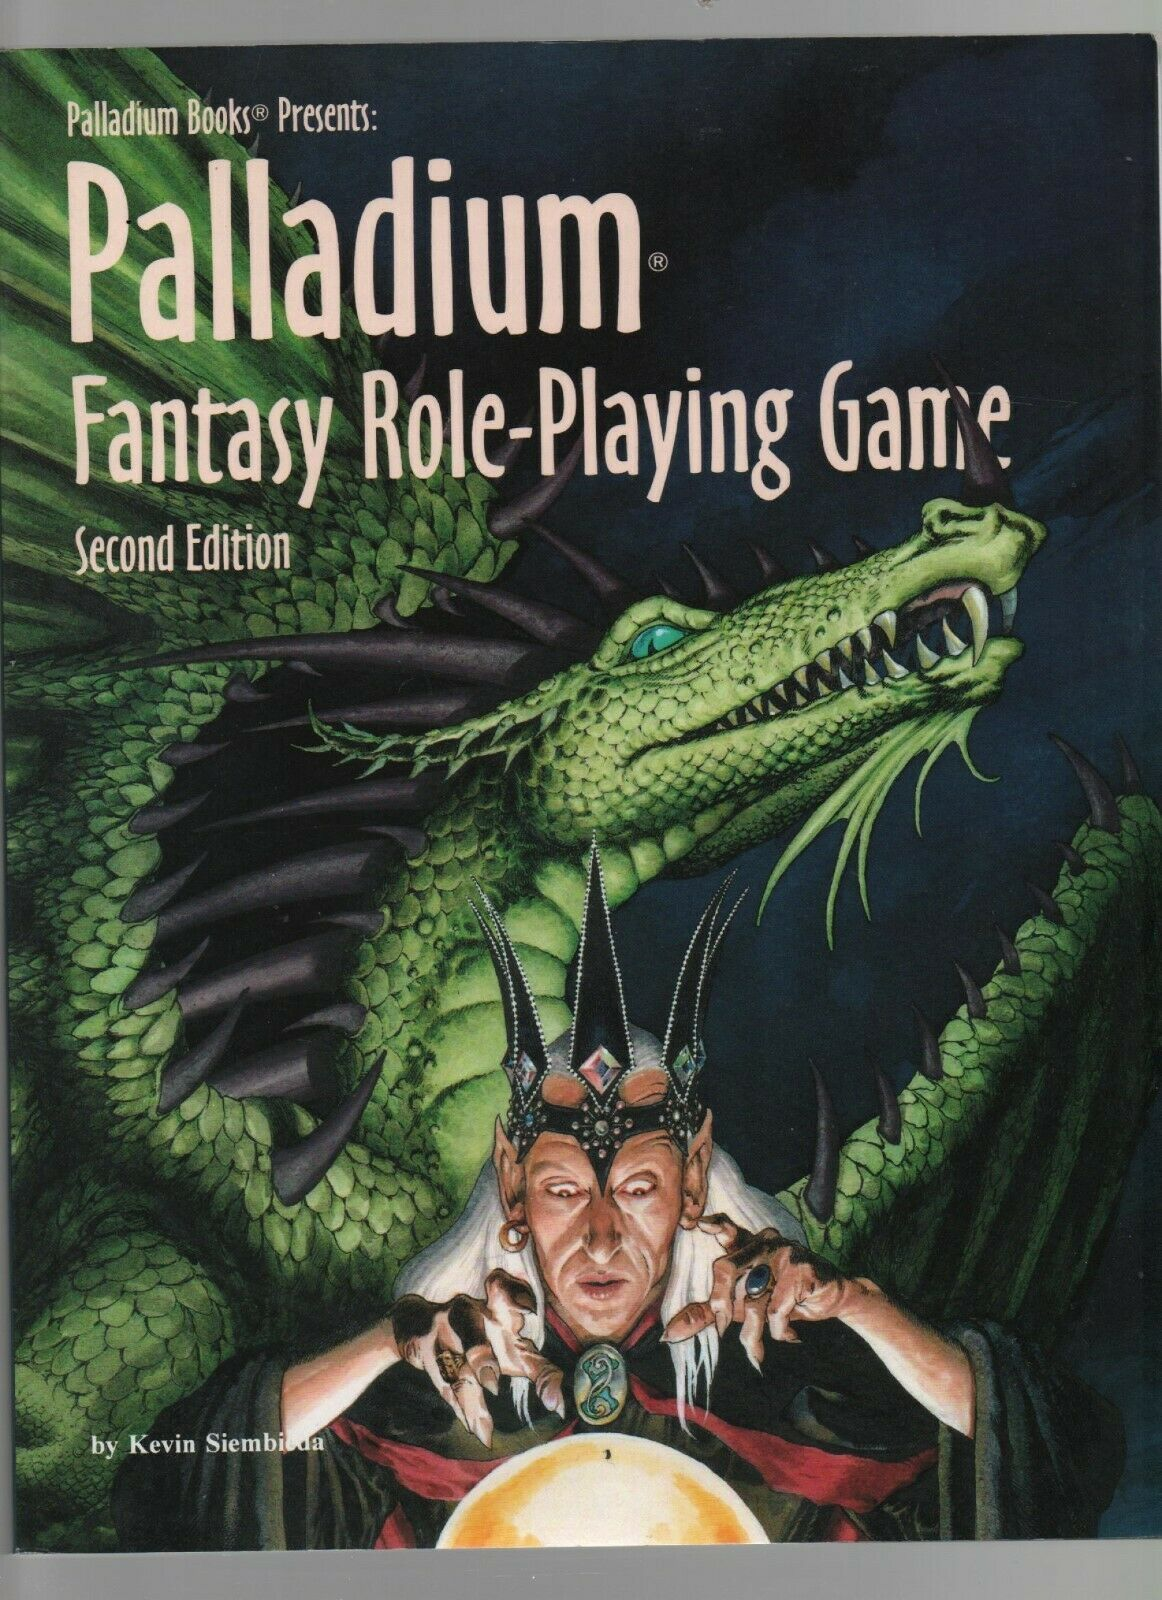 Primary image for Palladium Fantasy Role-Playing Game - Second Edition - SC - 2014 Palladium Books